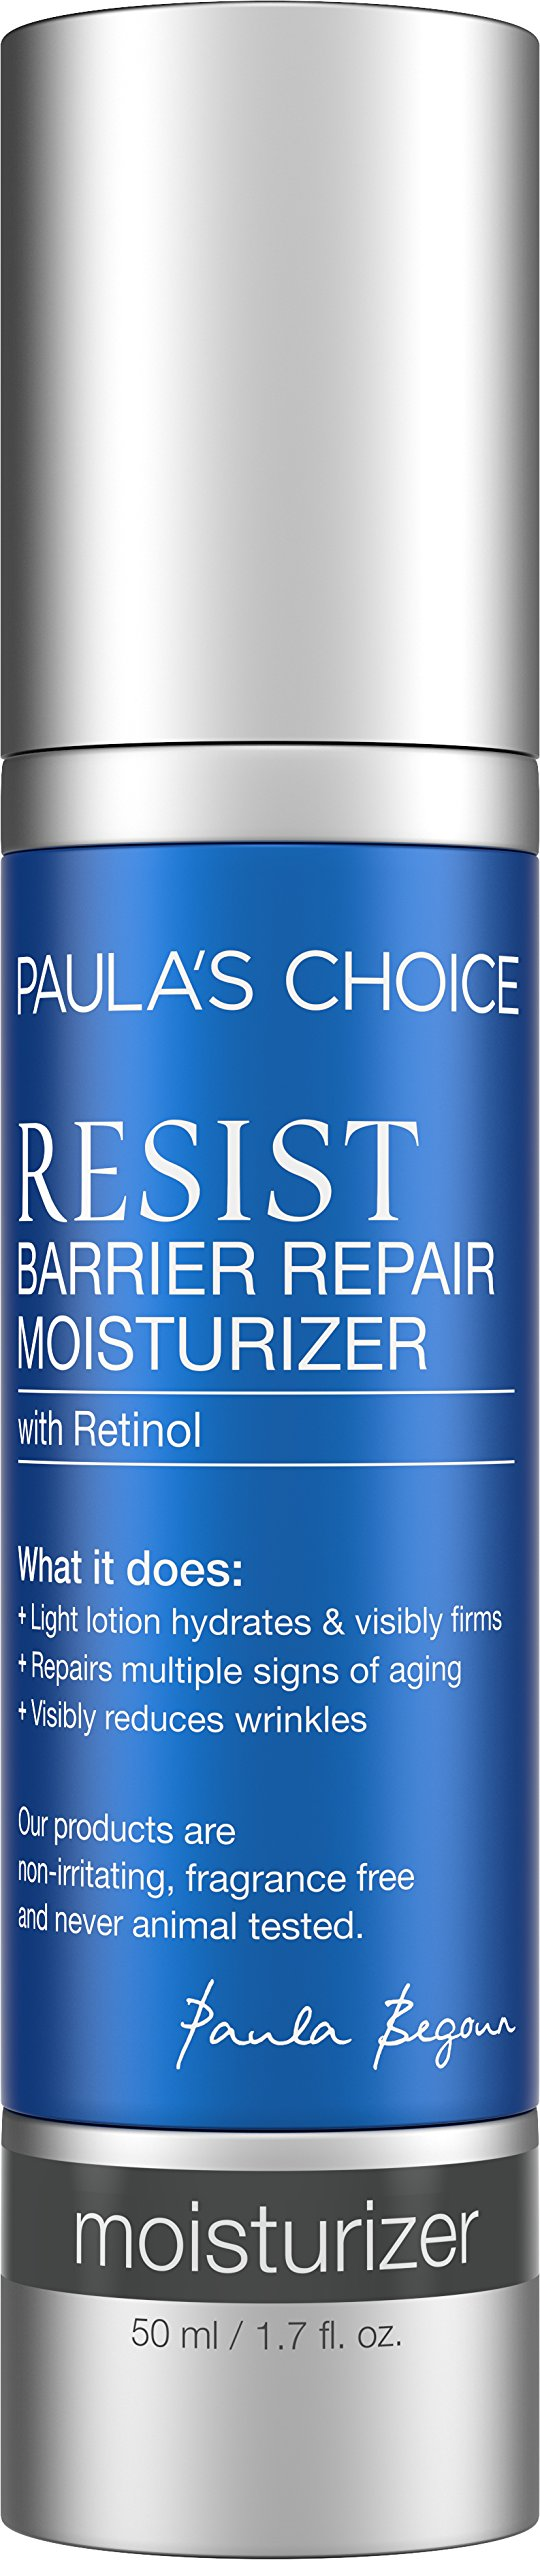 Paula's Choice RESIST Barrier Repair Moisturizer with Retinol and Antioxidants, 1.7 oz (1 Bottle) for Normal to Dry Skin Aging Skin Fine Lines Facial Wrinkles Dull Skin of the Face- 1.7 oz